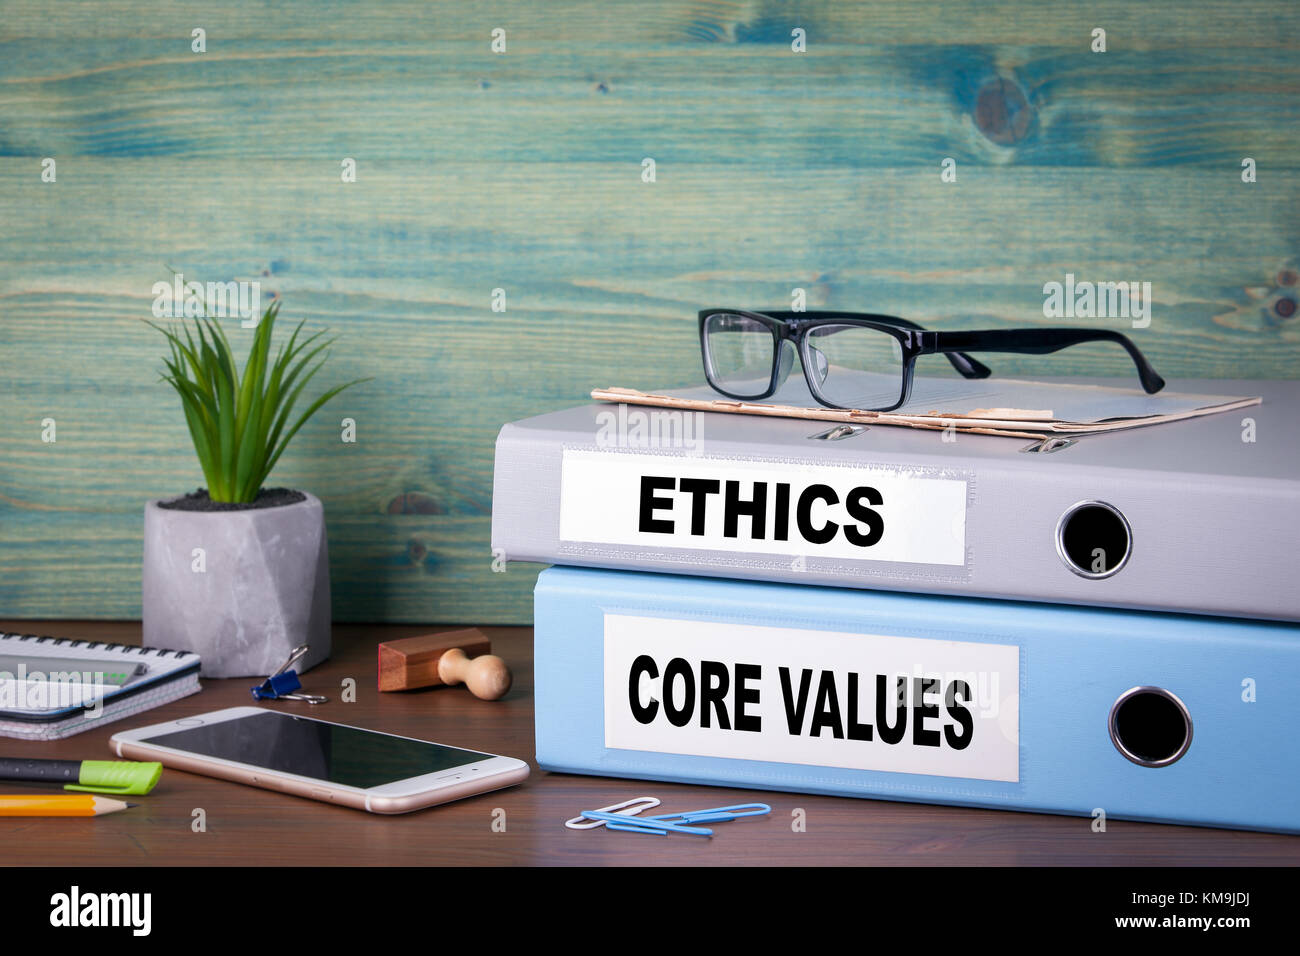 core values and ethics. Successful business and career background - Stock Image